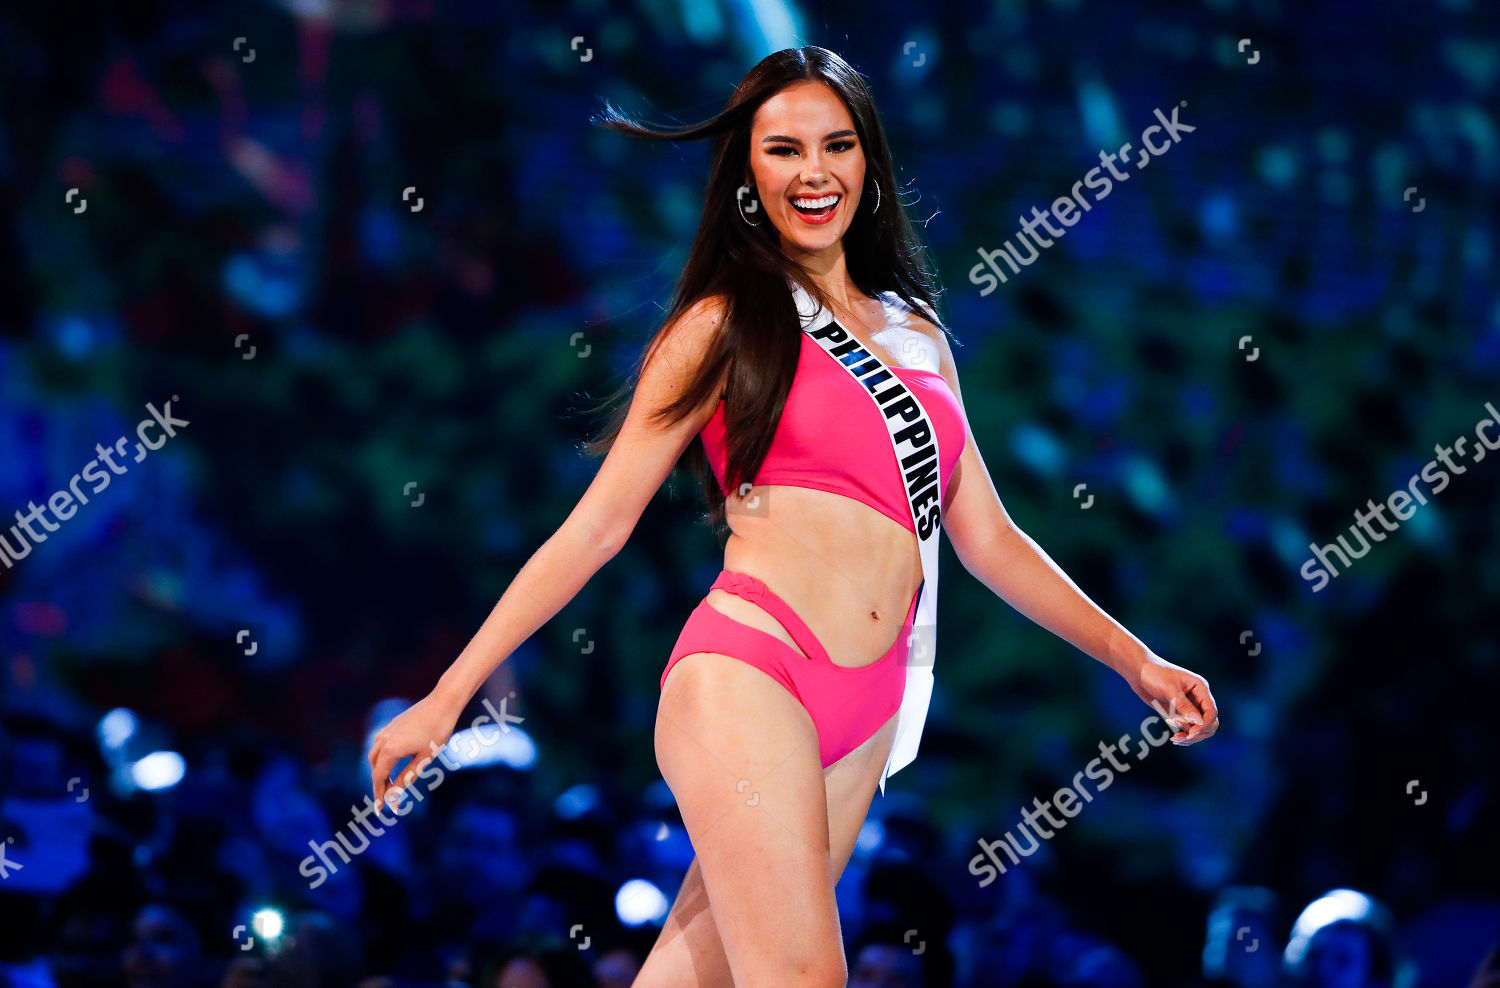 Erotica Catriona Gray naked (51 foto and video), Ass, Paparazzi, Instagram, underwear 2019